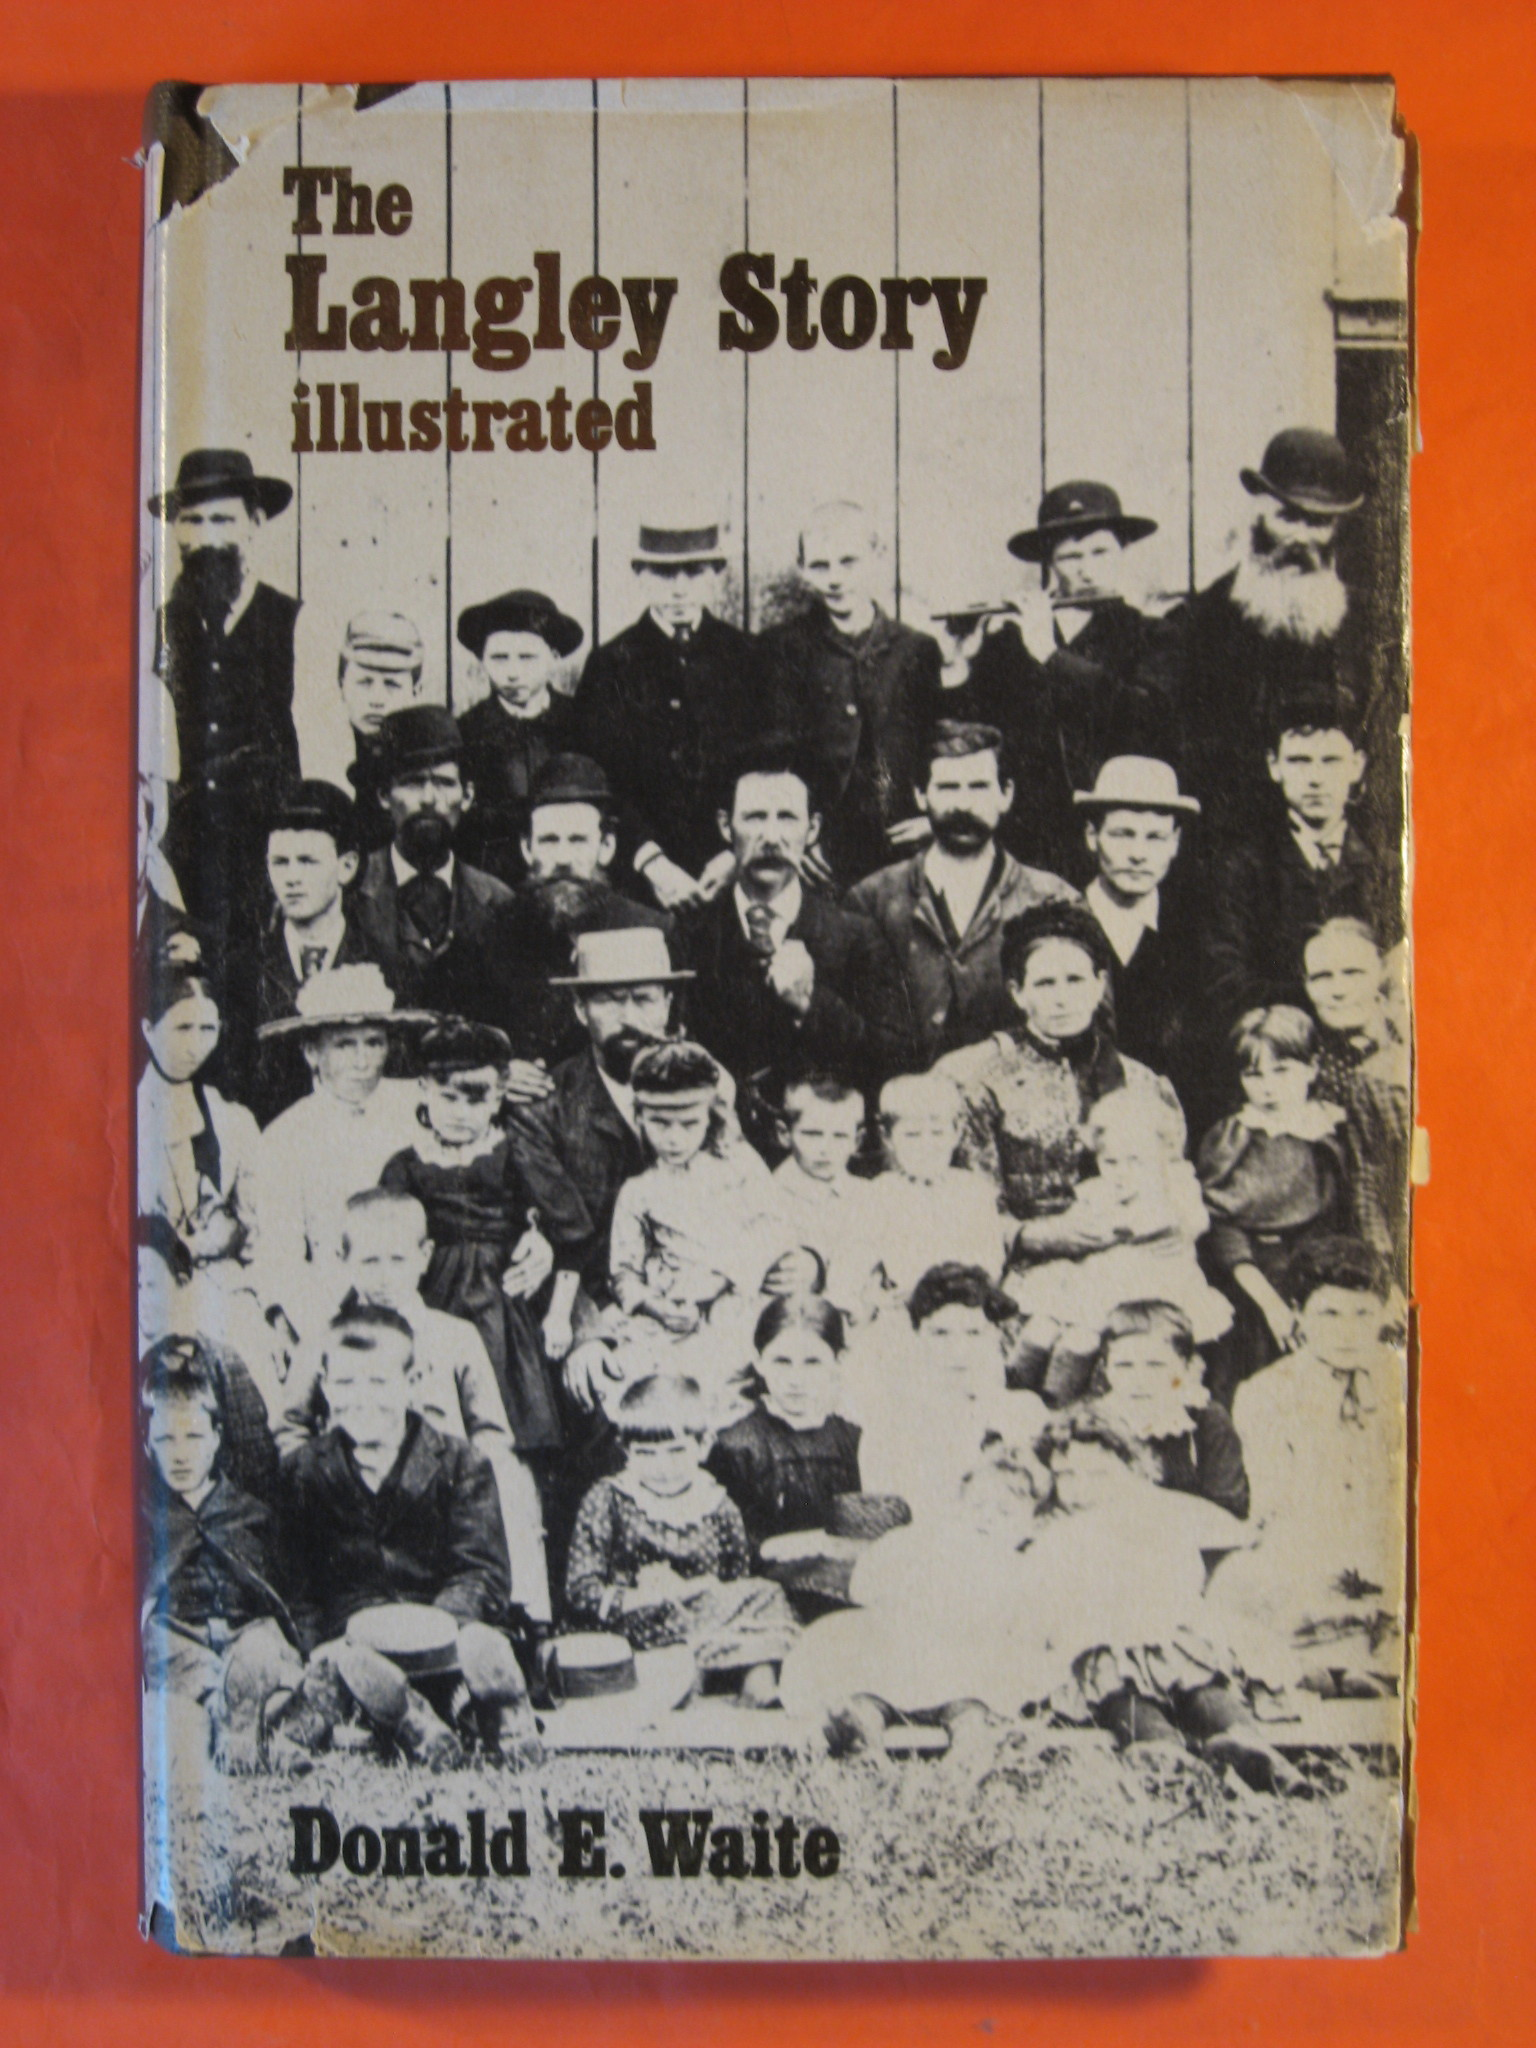 The Langley Story Illustrated: An Early History of the Municipality of Langley, Don E. Waite